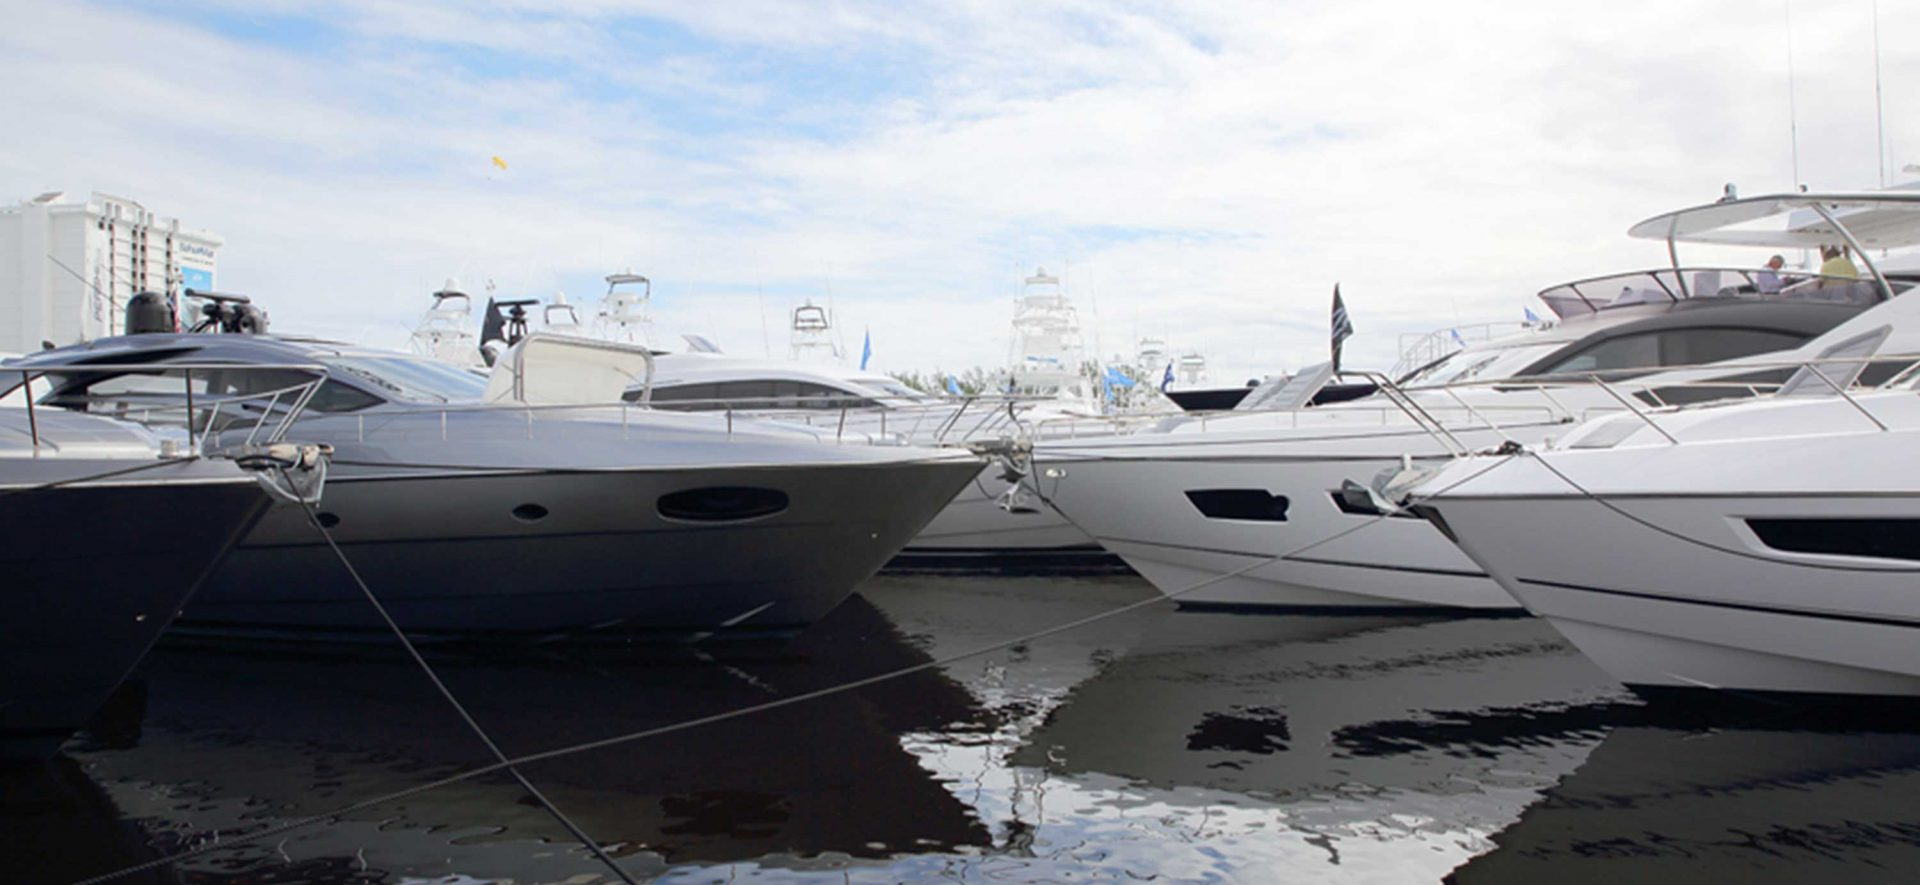 Yachts at the Fort Lauderdale International Boat Show.